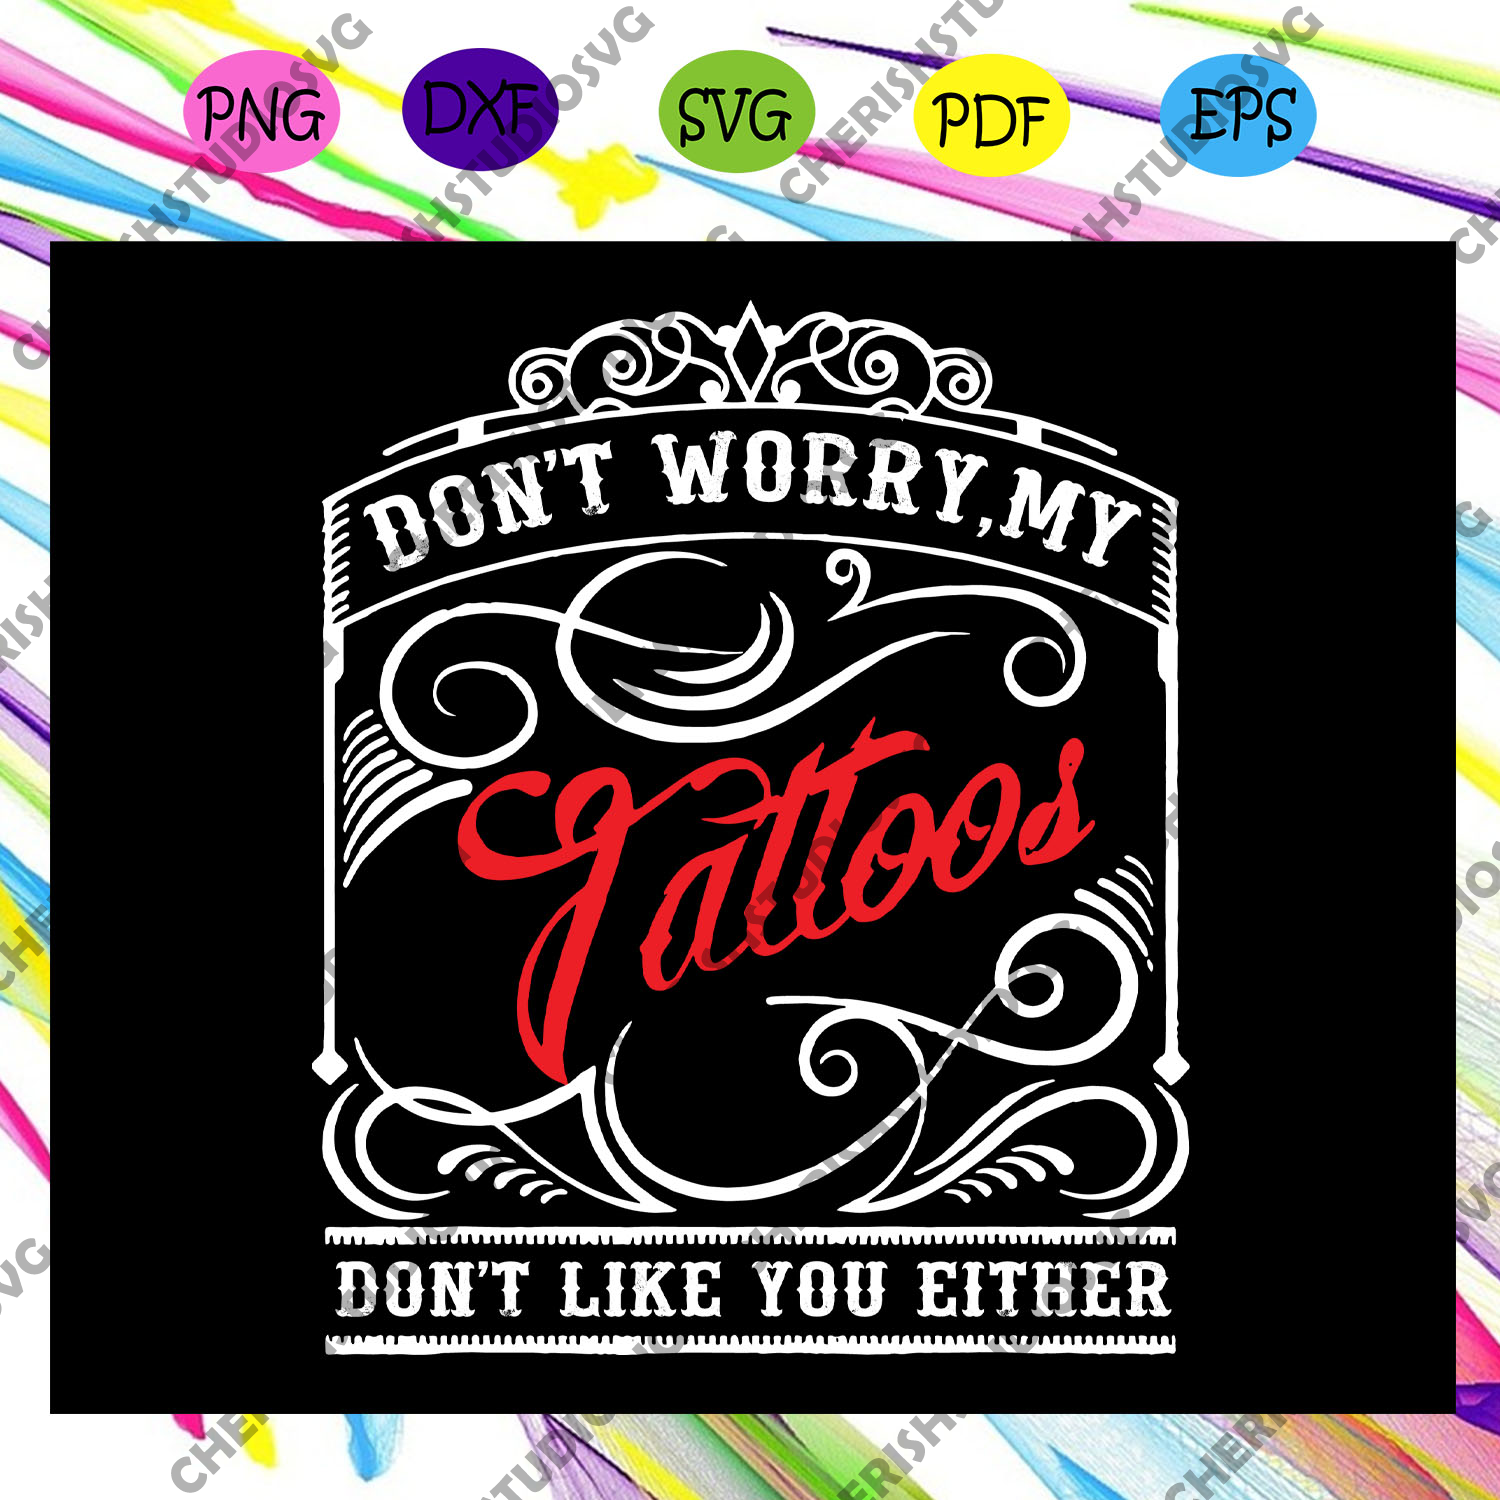 Don't worry my tattoos don't like you either svg, Trending Svg, tattoos svg, funny sayings, sarcasm svg, funny sarcastic, tattoo lover, tattoo lover gift, Files For Silhouette, Files For Cricut, SVG, DXF, EPS, PNG, Instant Download